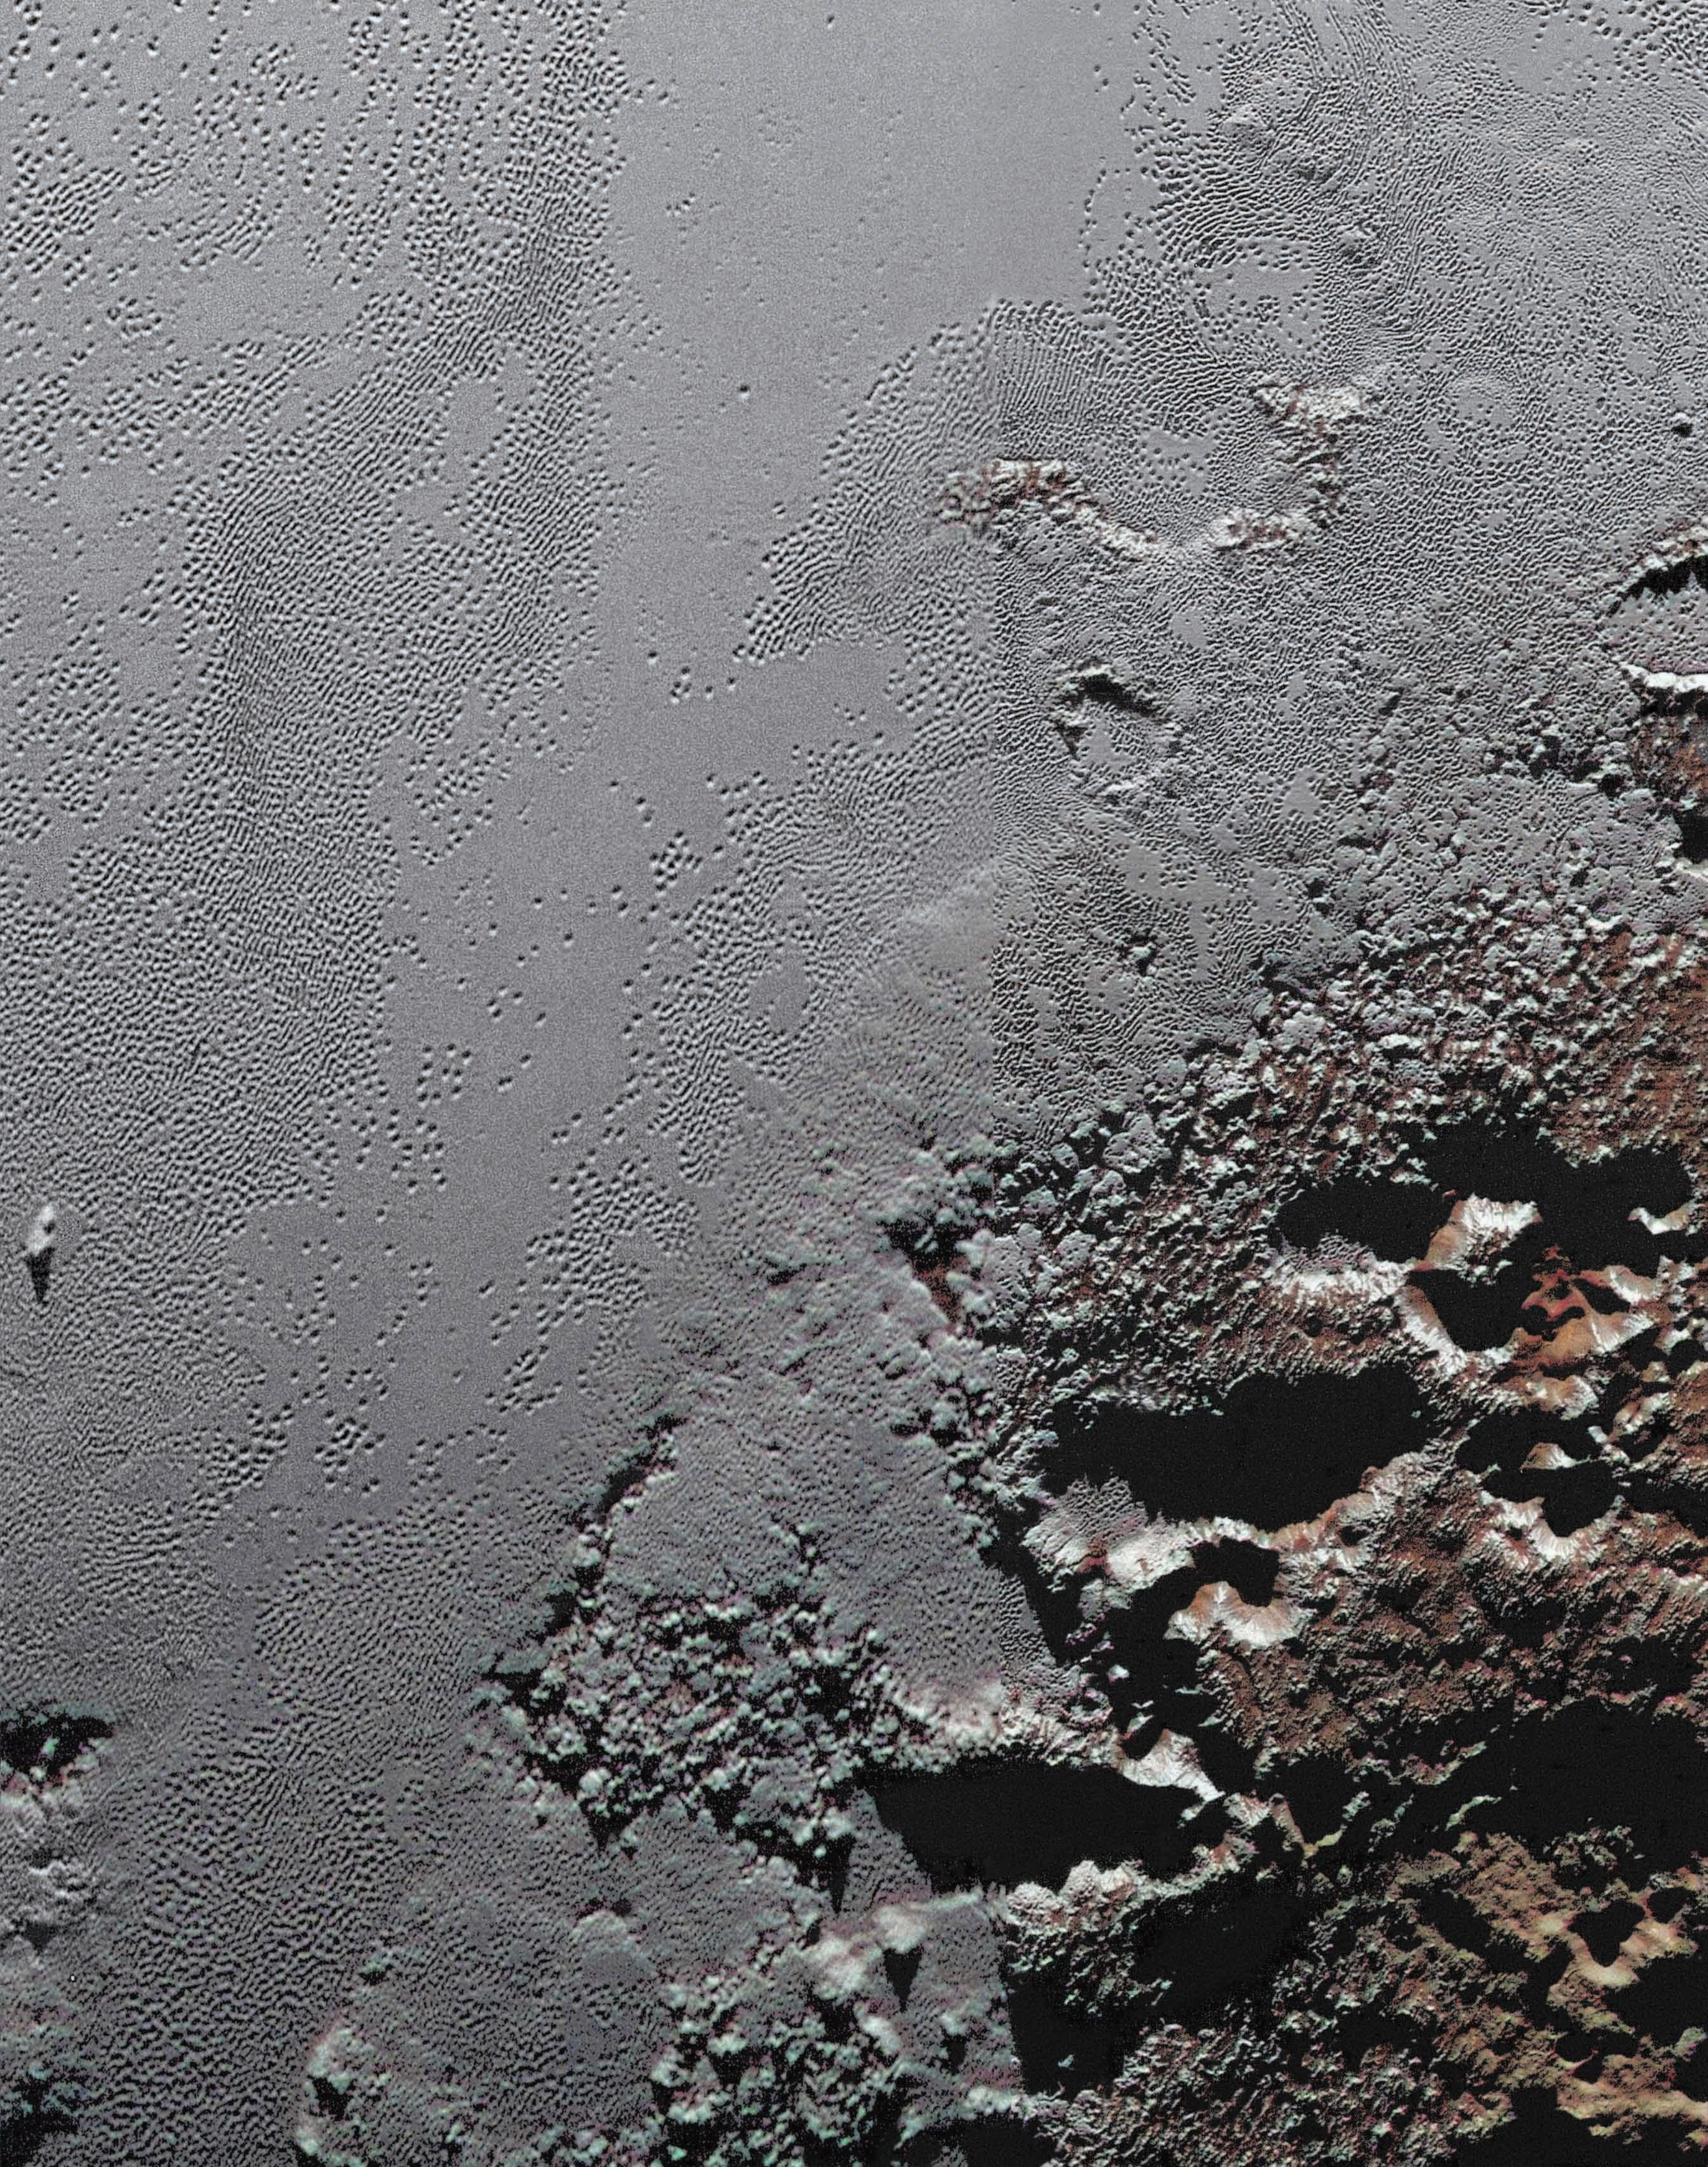 This dramatic image from NASA's New Horizons spacecraft shows the dark, rugged highlands known as Krun Macula (lower right), which border a section of Pluto's icy plains. Click on the image and zoom in for maximum detail. - Image   Credits: NASA/JHUAPL/SwR